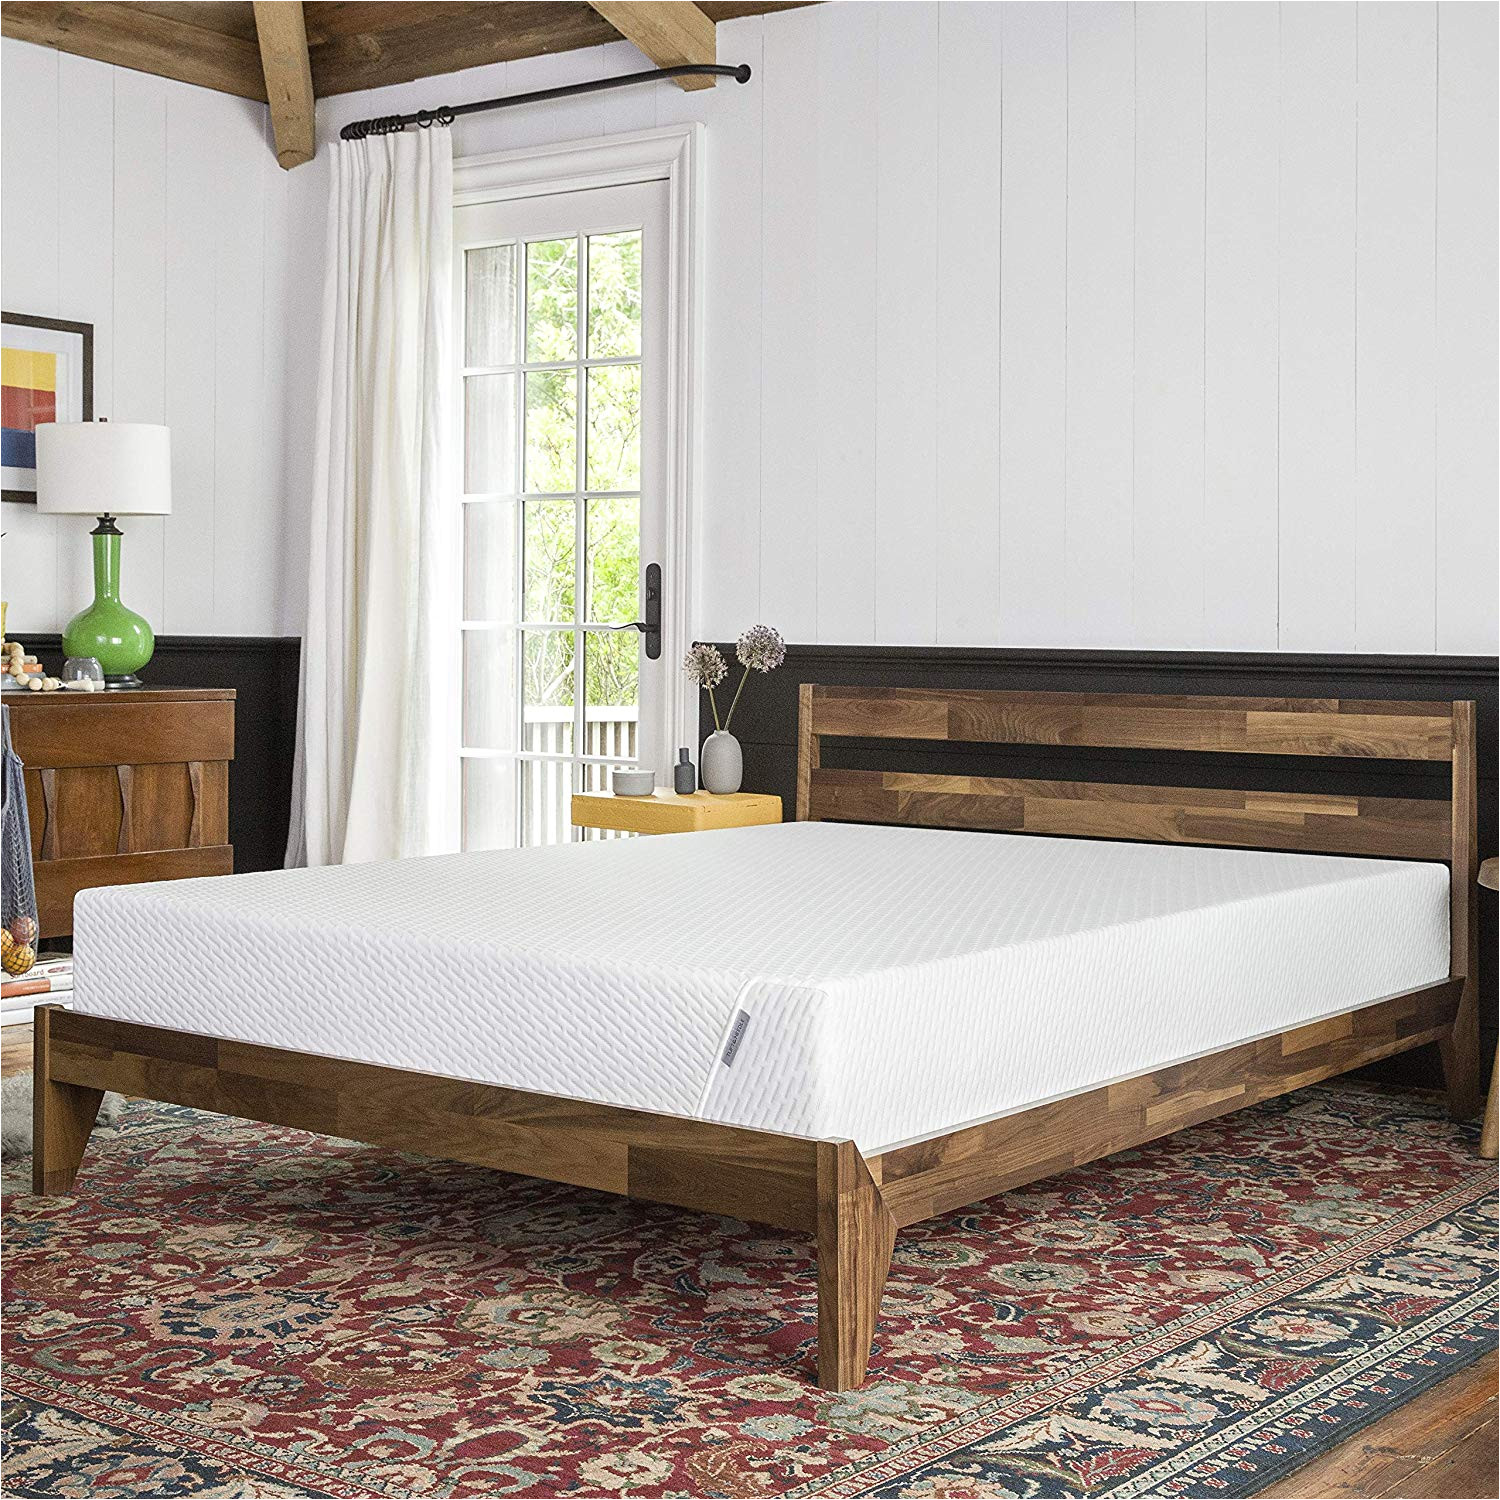 amazon com tuft needle queen mattress bed in a box t n adaptive foam sleeps cooler with more pressure relief support than memory foam